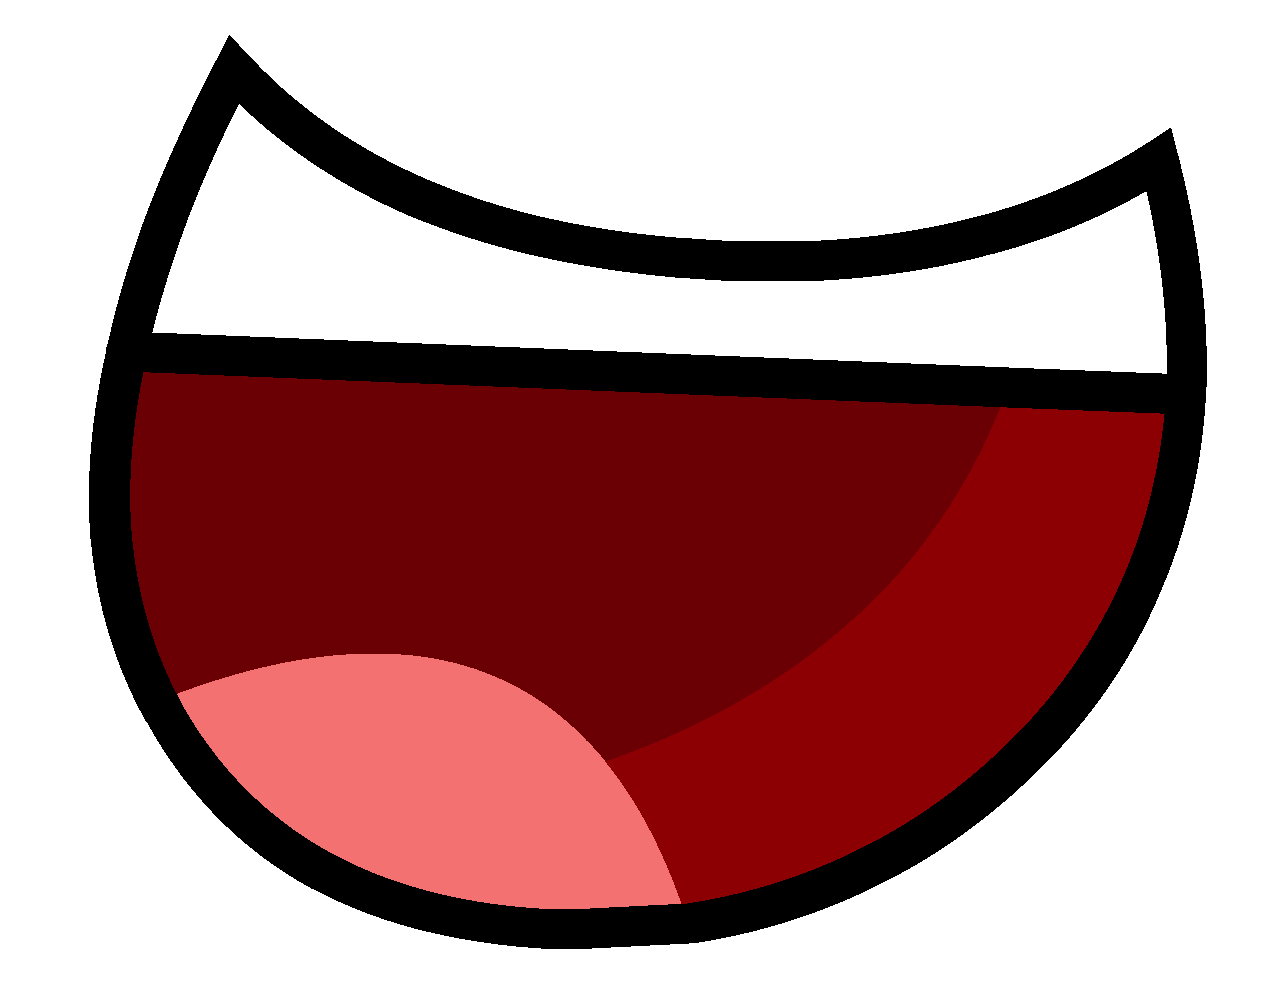 Cute smile mouth clipart